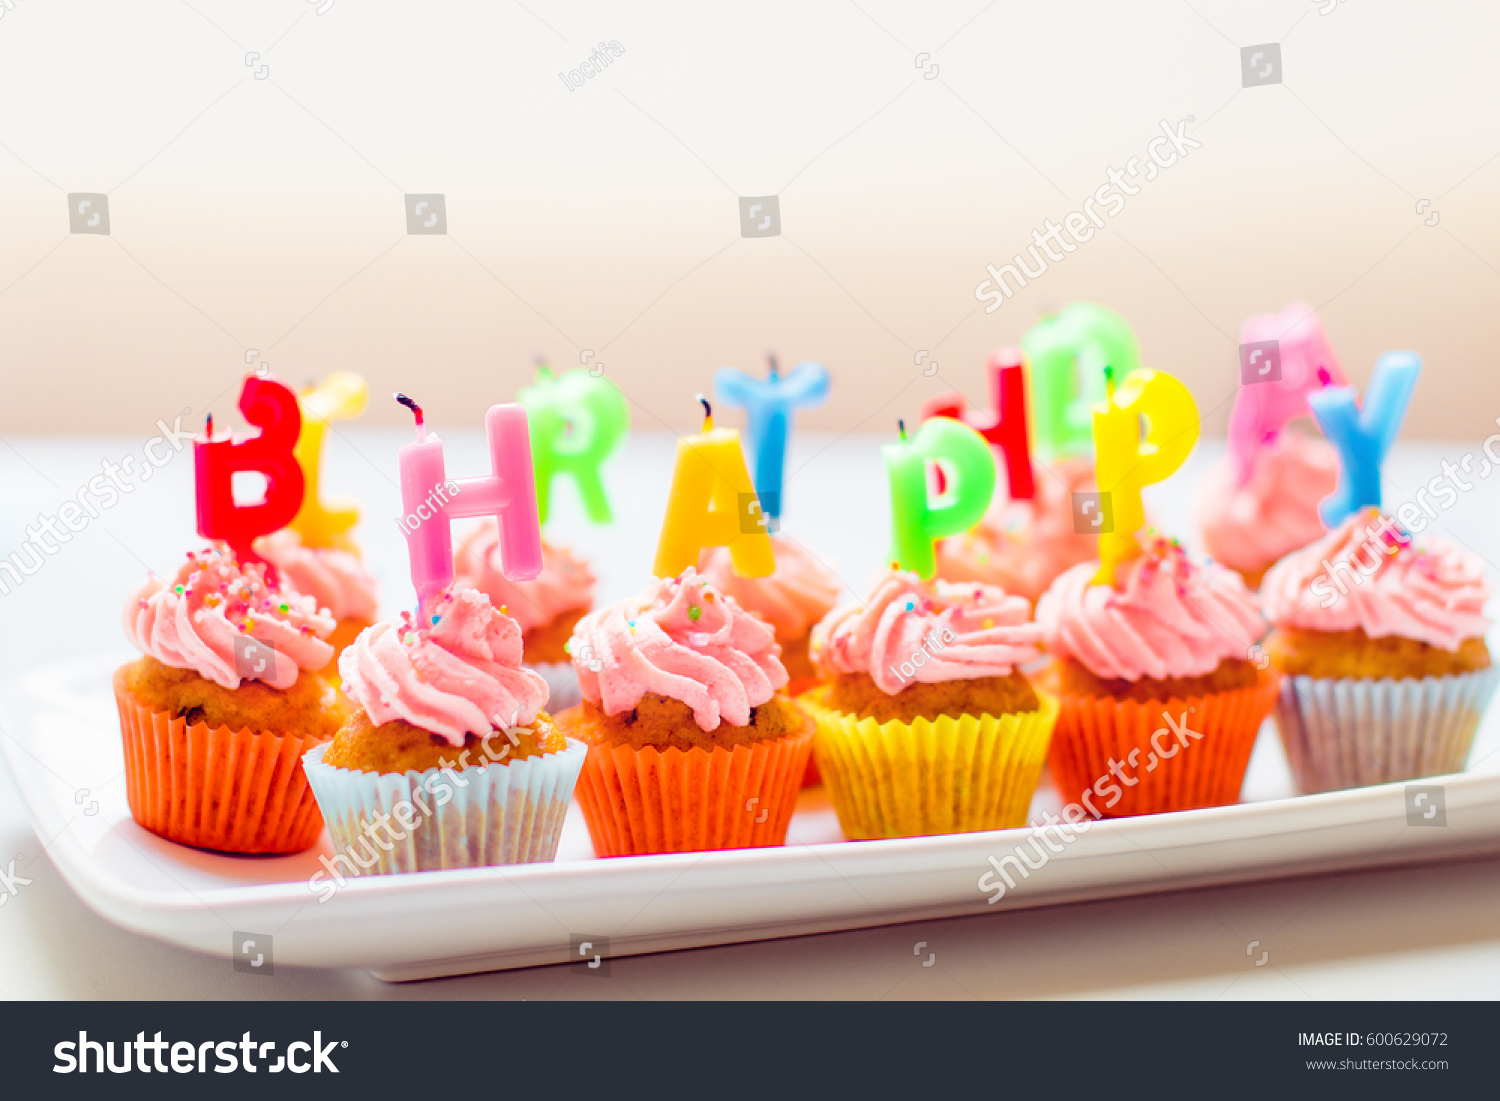 Colorful Birthday Cupcakes With Candles